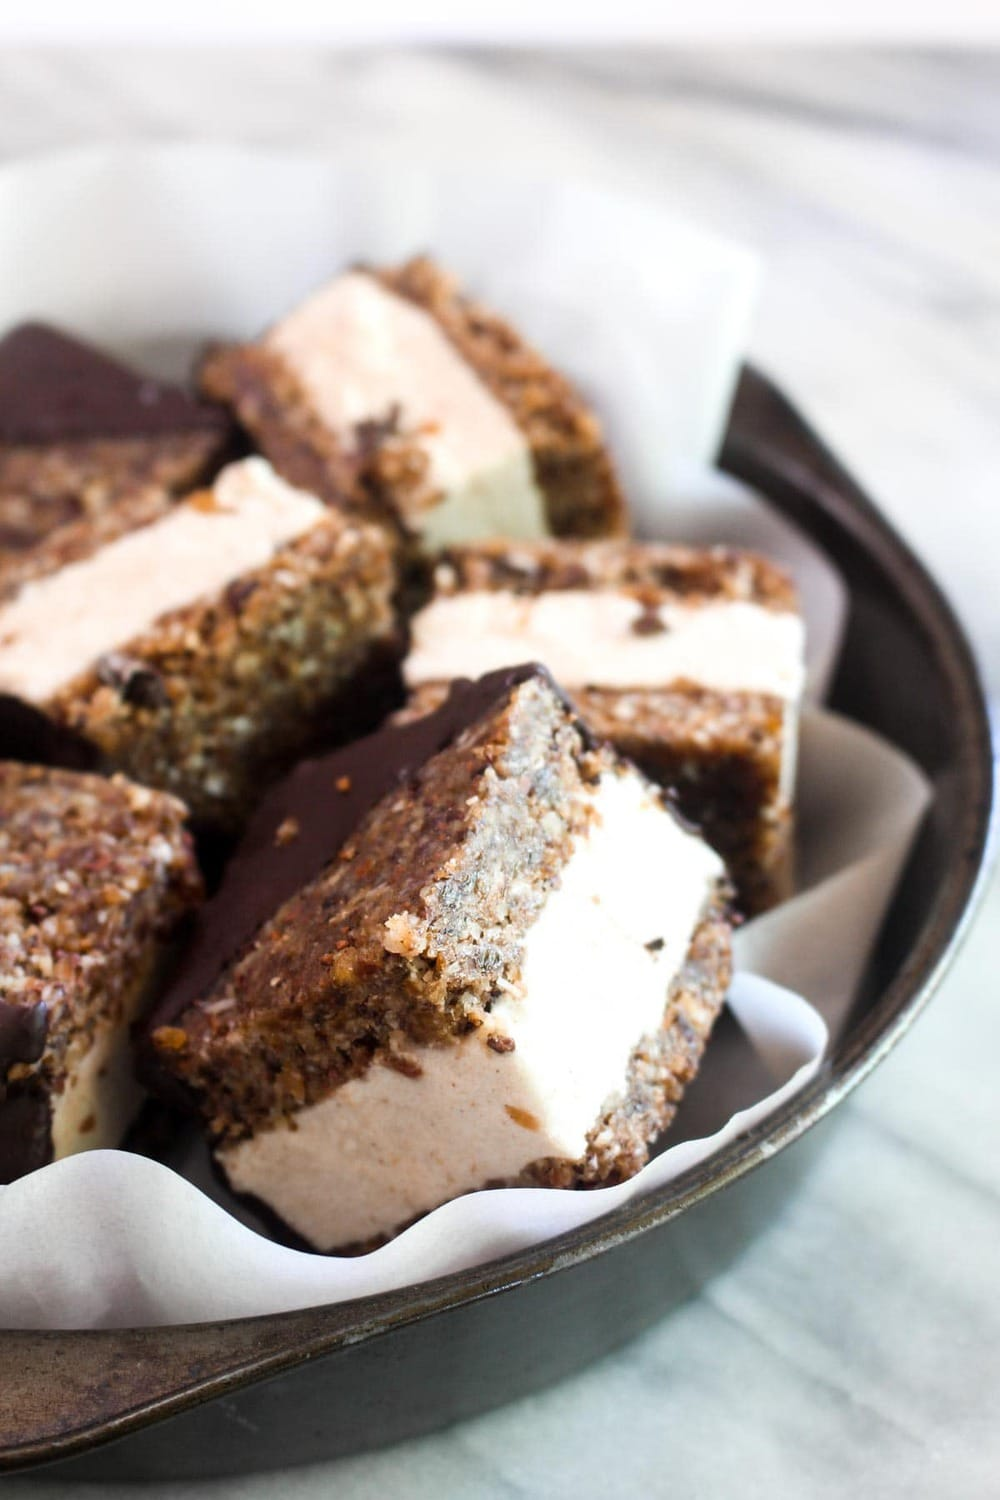 These Healthy Ice Cream Sandwiches are raw, paleo, vegan and gluten free! Smooth vanilla ice cream gets sandwiched between two chocolate cookies for a decadent and healthy dessert which only requires 20 minutes of hands on time! | CatchingSeeds.com